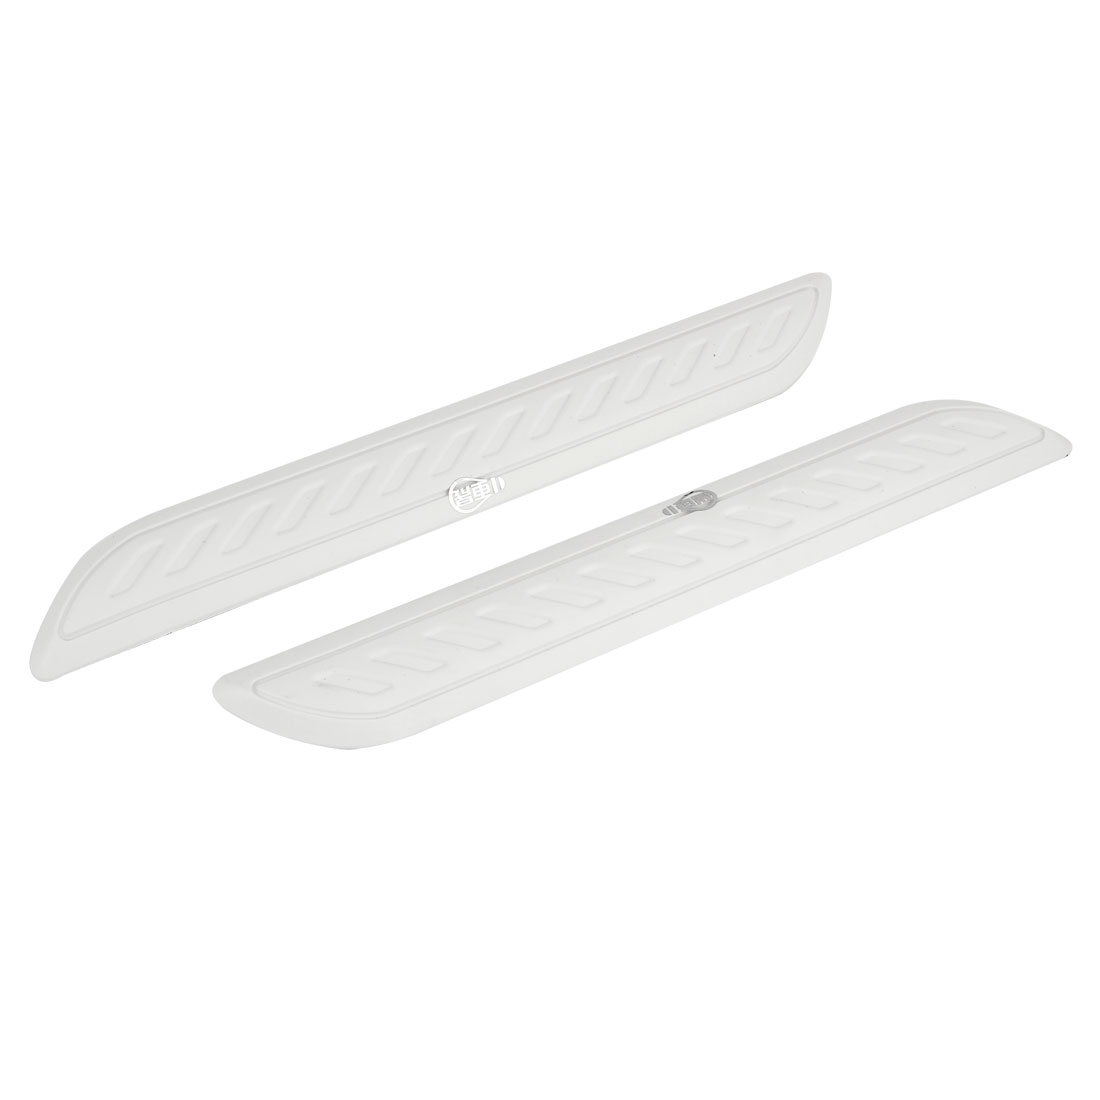 2 Pcs Auto Stripe Decor Plastic Bumper Fender Guard Sticker White